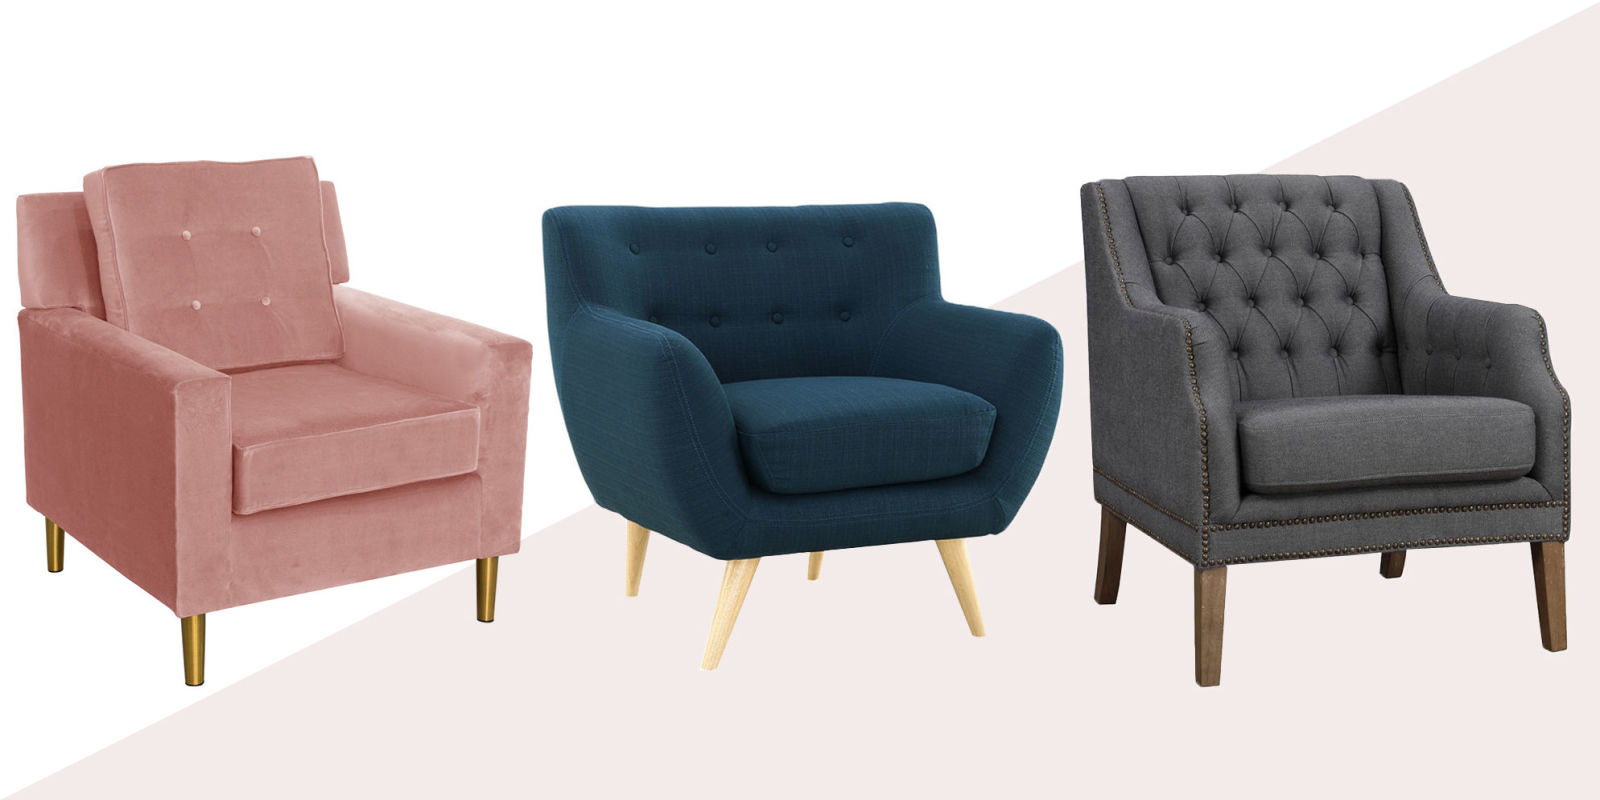 13 Best Arm Chairs In 2017   Contemporary Accent, Arm, And Lounge Chairs